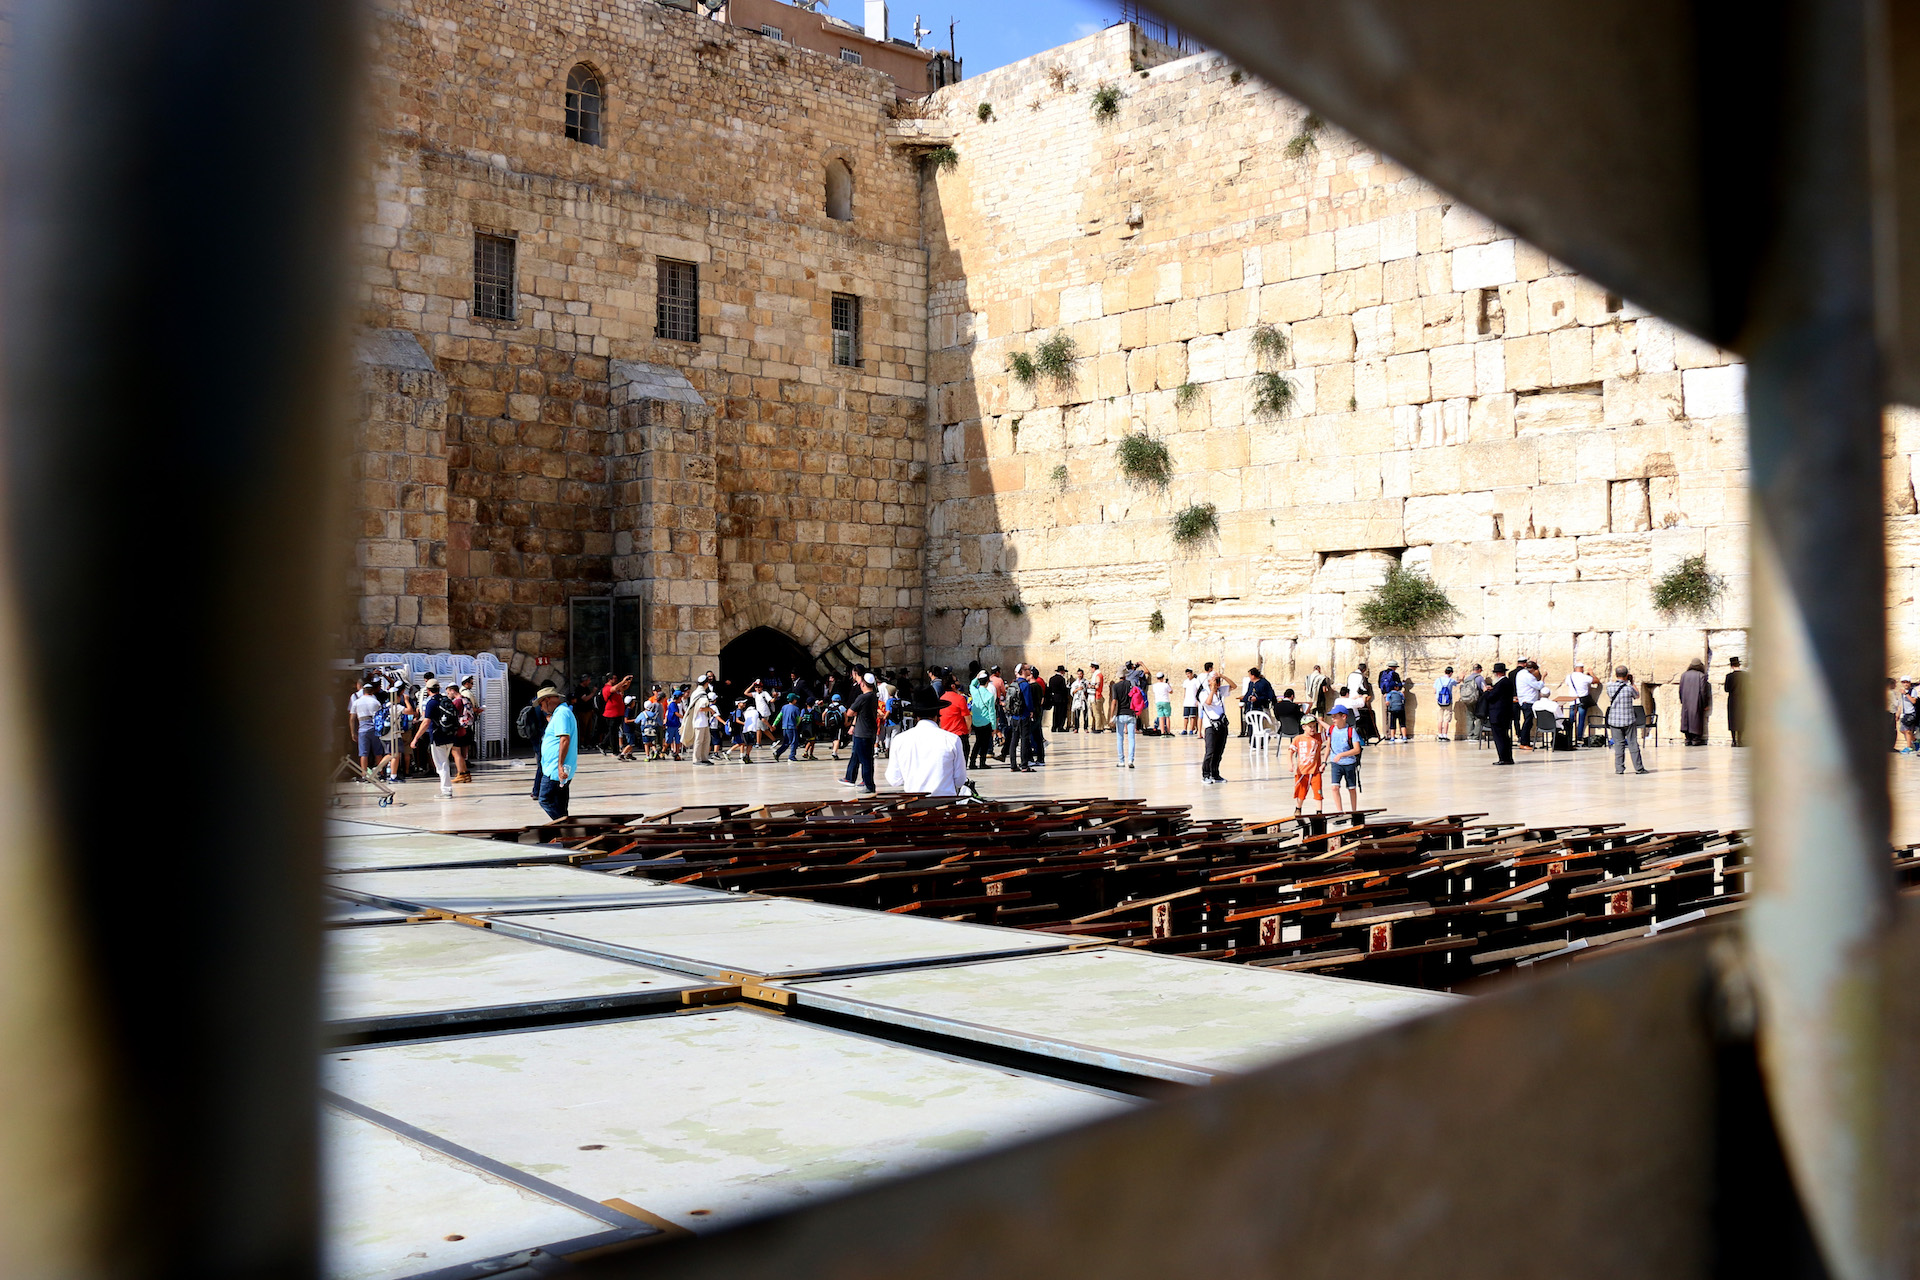 JERUSALEM, ISRAEL, MAY 29, 2016. View of the men at the Western Wall through the fence separating the women's side. Located in Jerusalem's Old City, East Jerusalem. 05/29/2016. Photo by Donna M. Airoldi